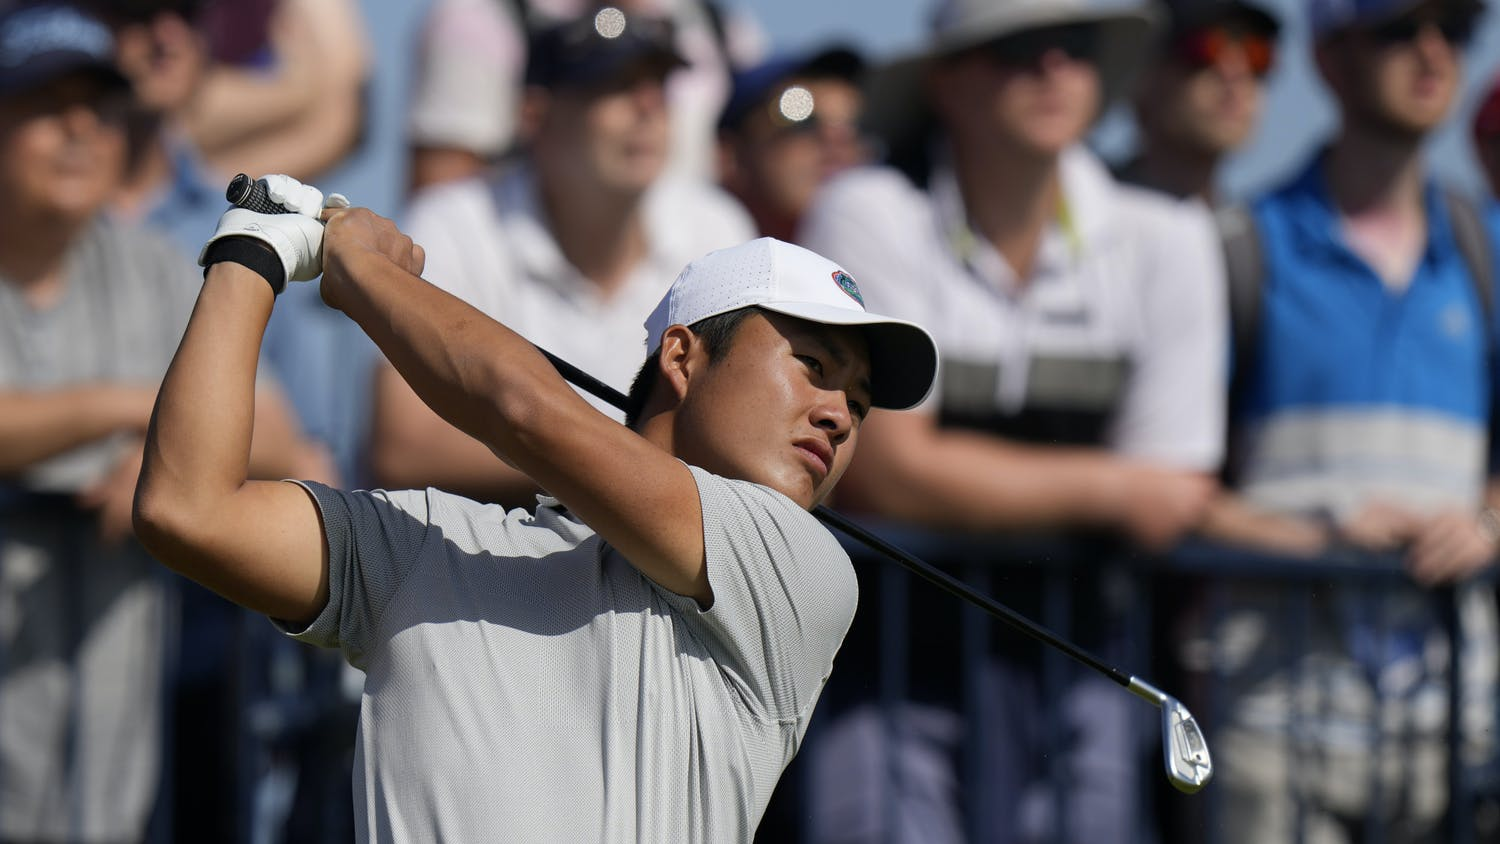 China's Yuxin Lin plays his tee shot on the 3rd hole during the third round of the British Open Golf Championship at Royal St George's golf course Sandwich, England, Saturday, July 17, 2021. (AP Photo/Alastair Grant)